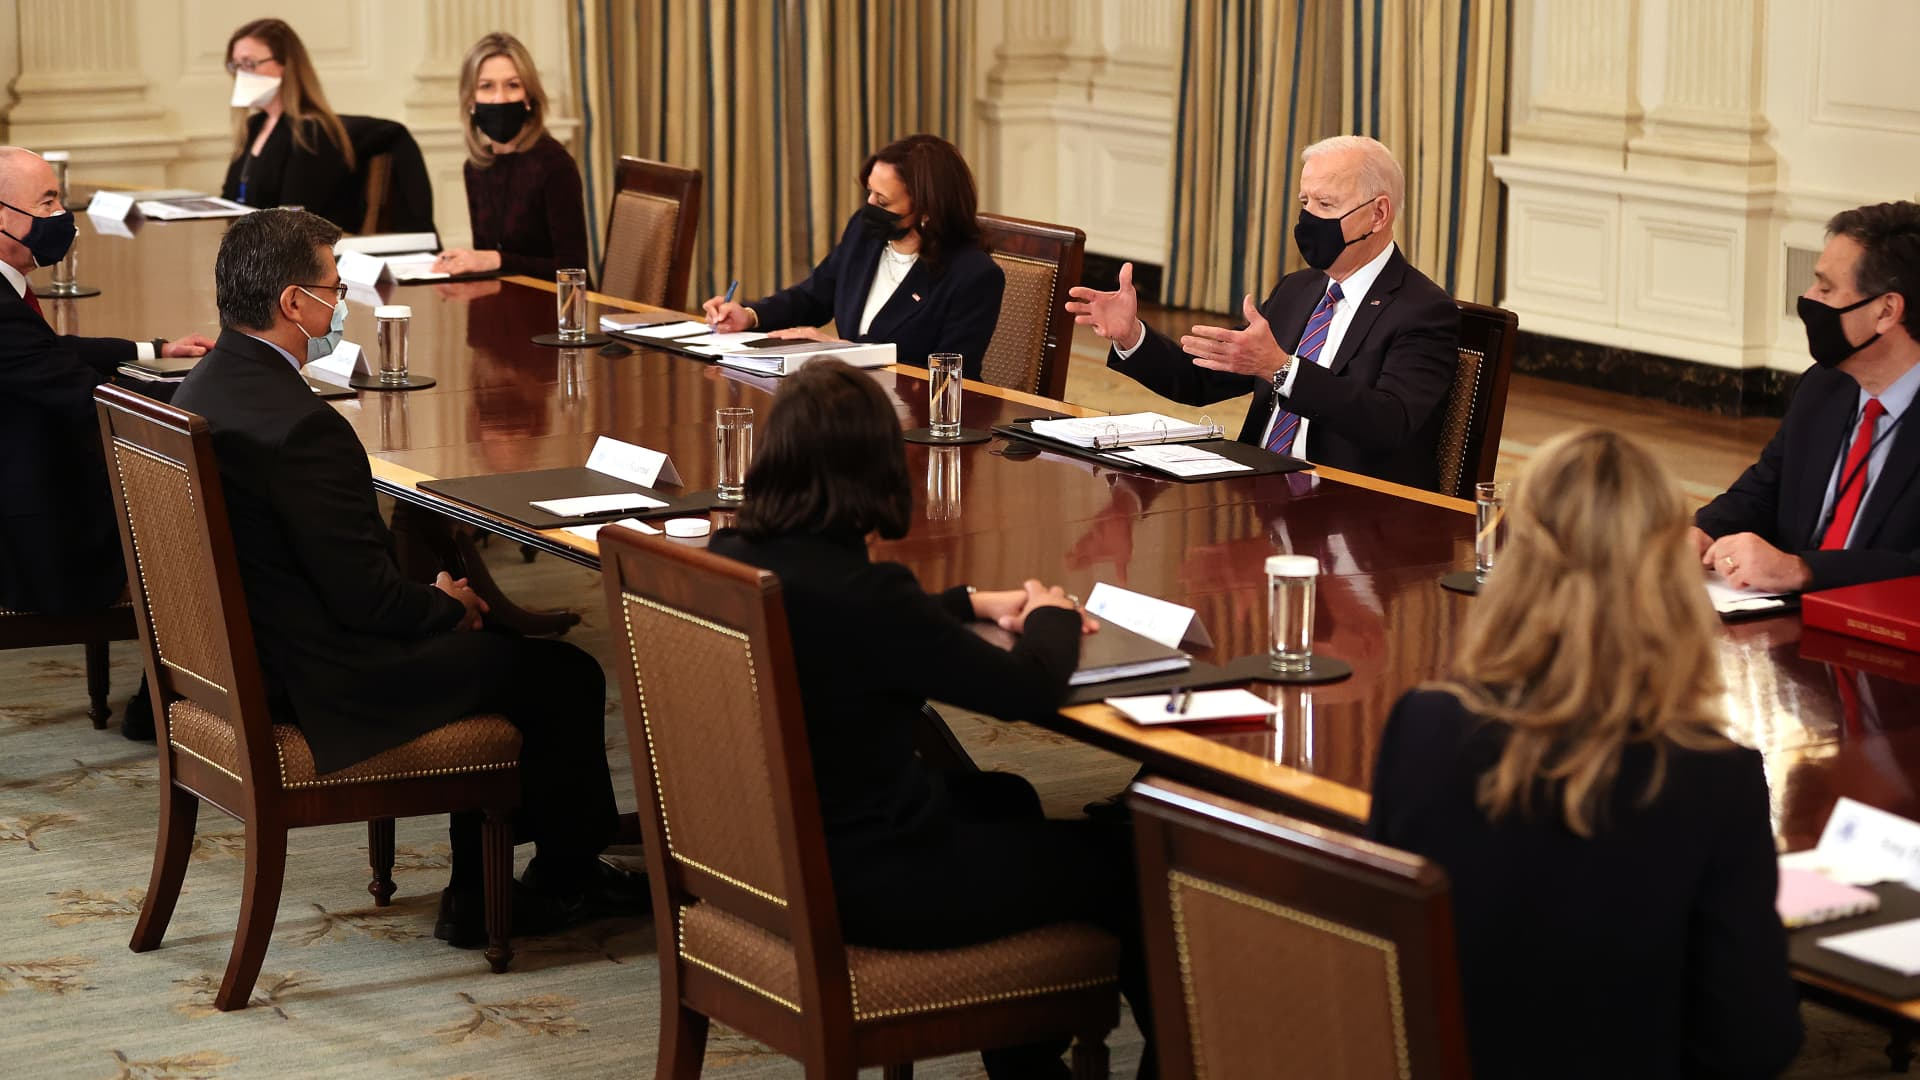 President Joe Biden and Vice President Kamala Harris meet with Cabinet members and immigration advisors in the State Dining Room on March 24, 2021 in Washington, DC.